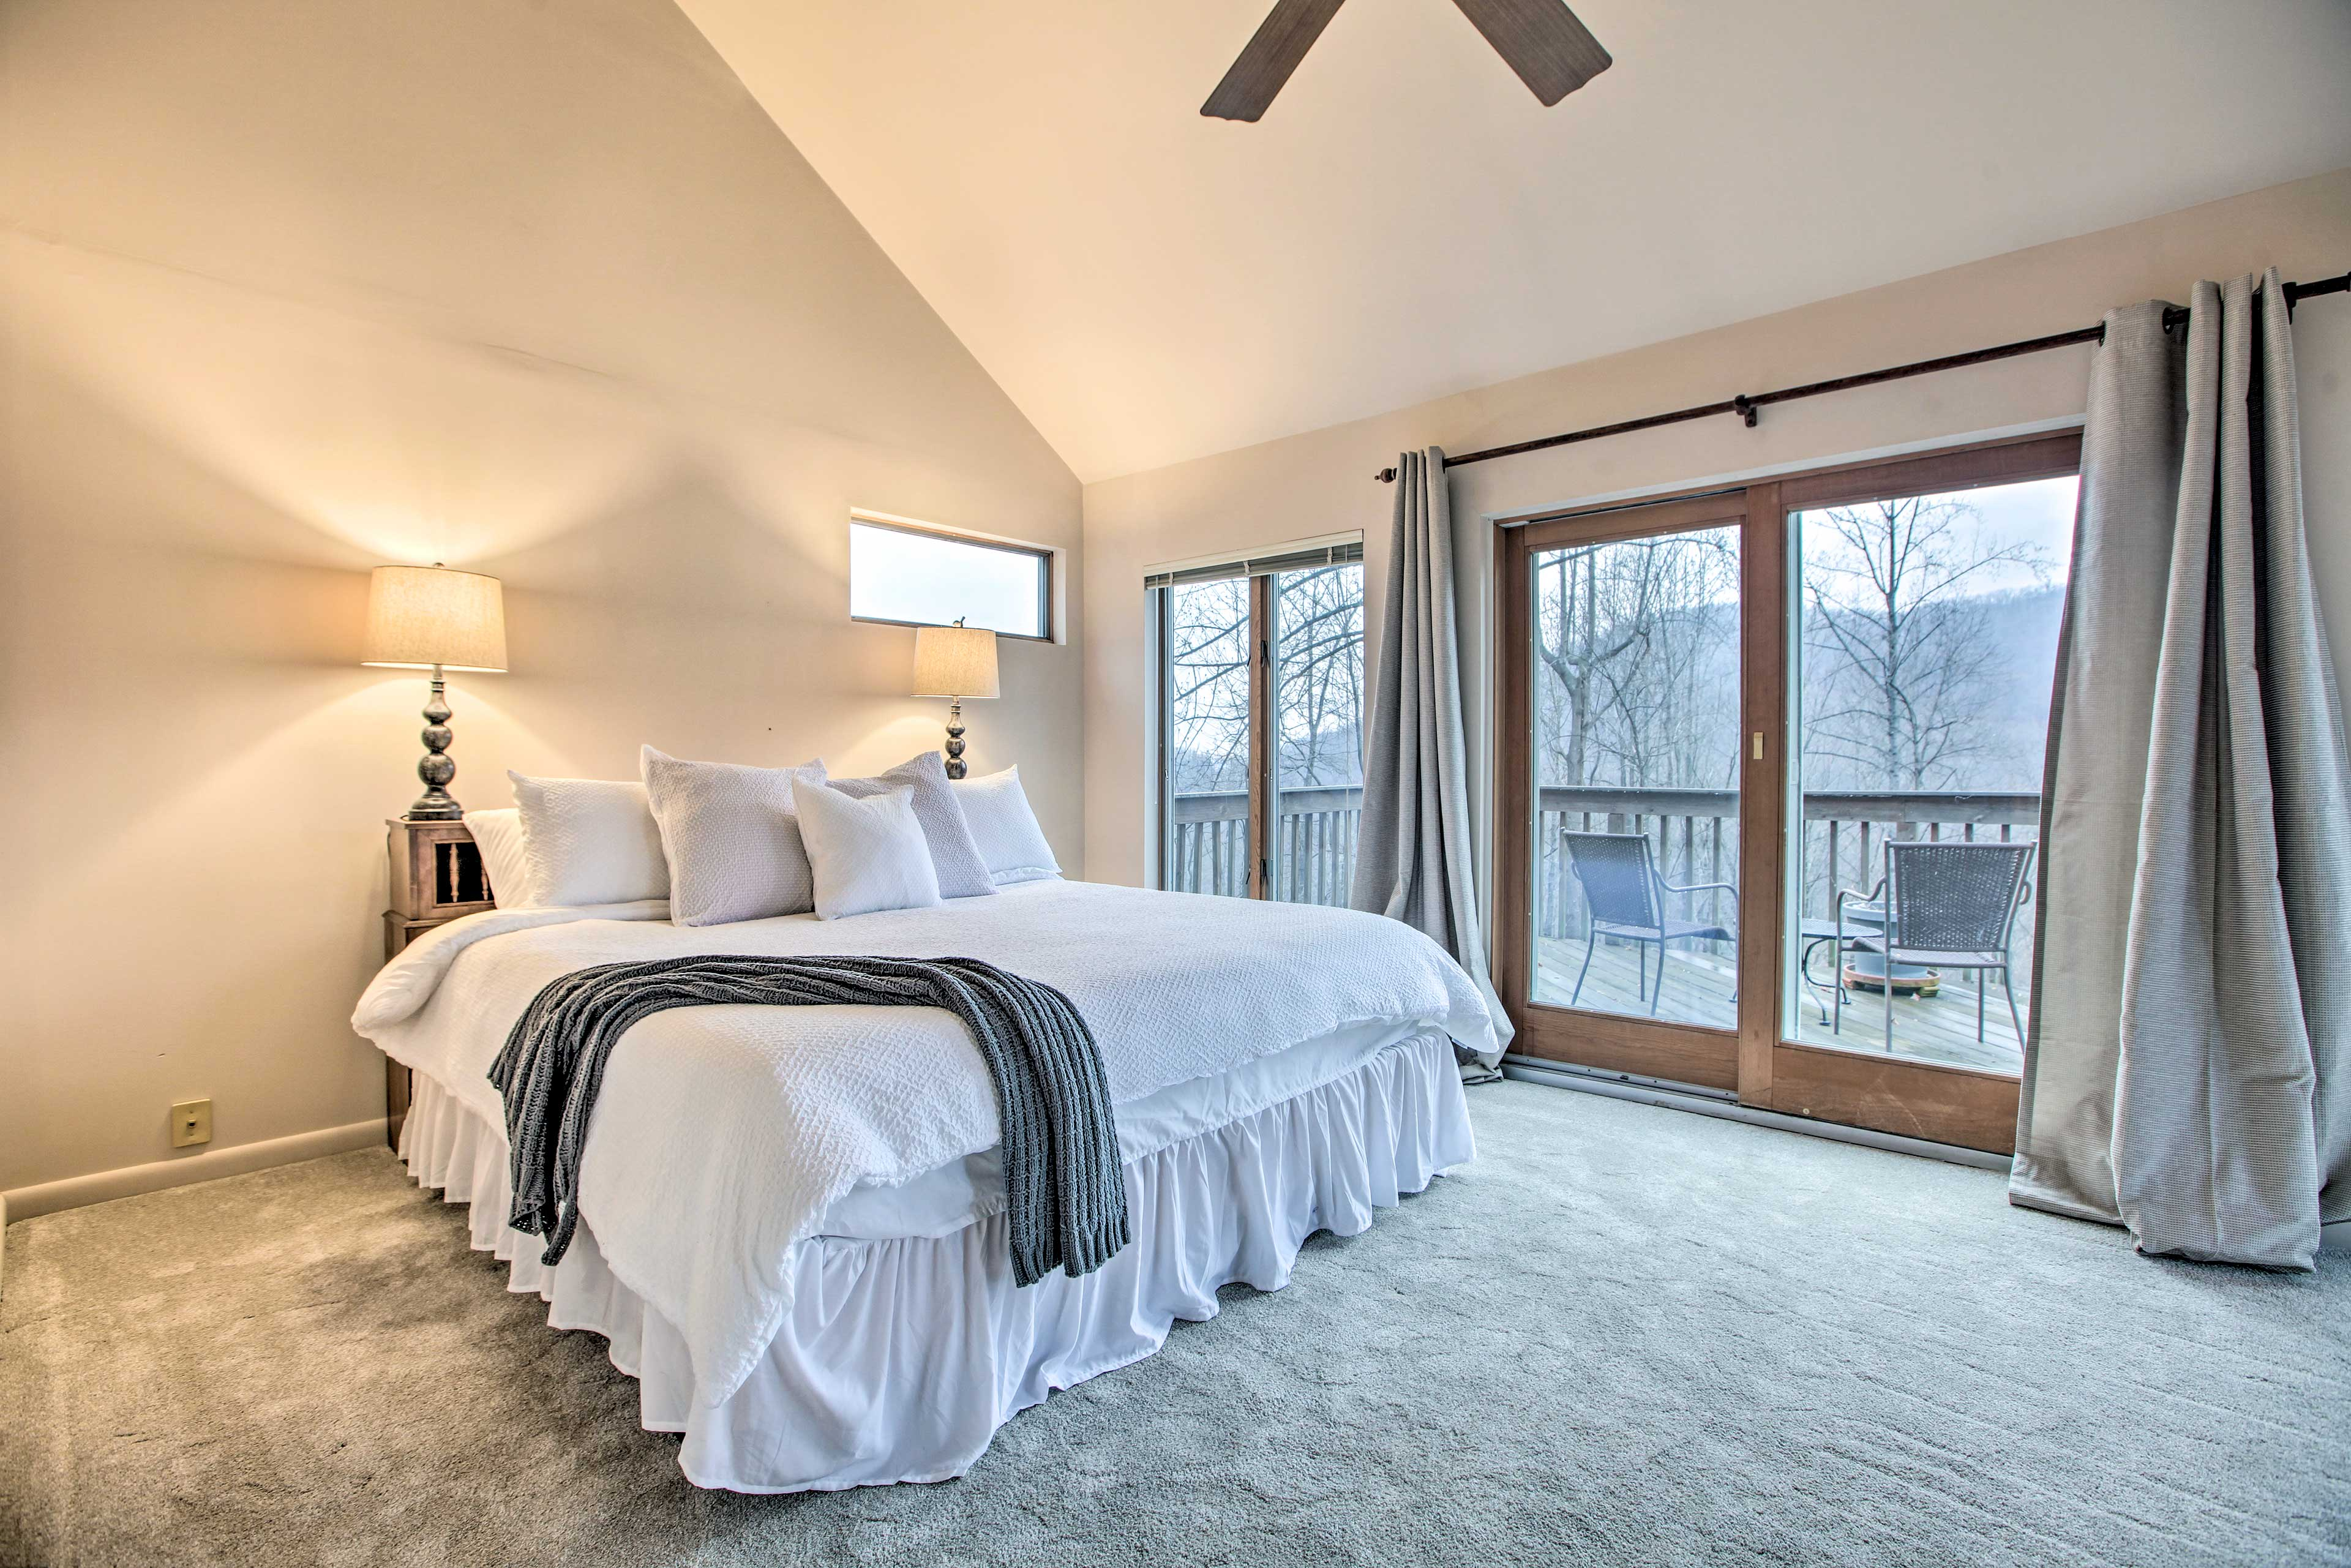 Claim the master bedroom and enjoy your own balcony.